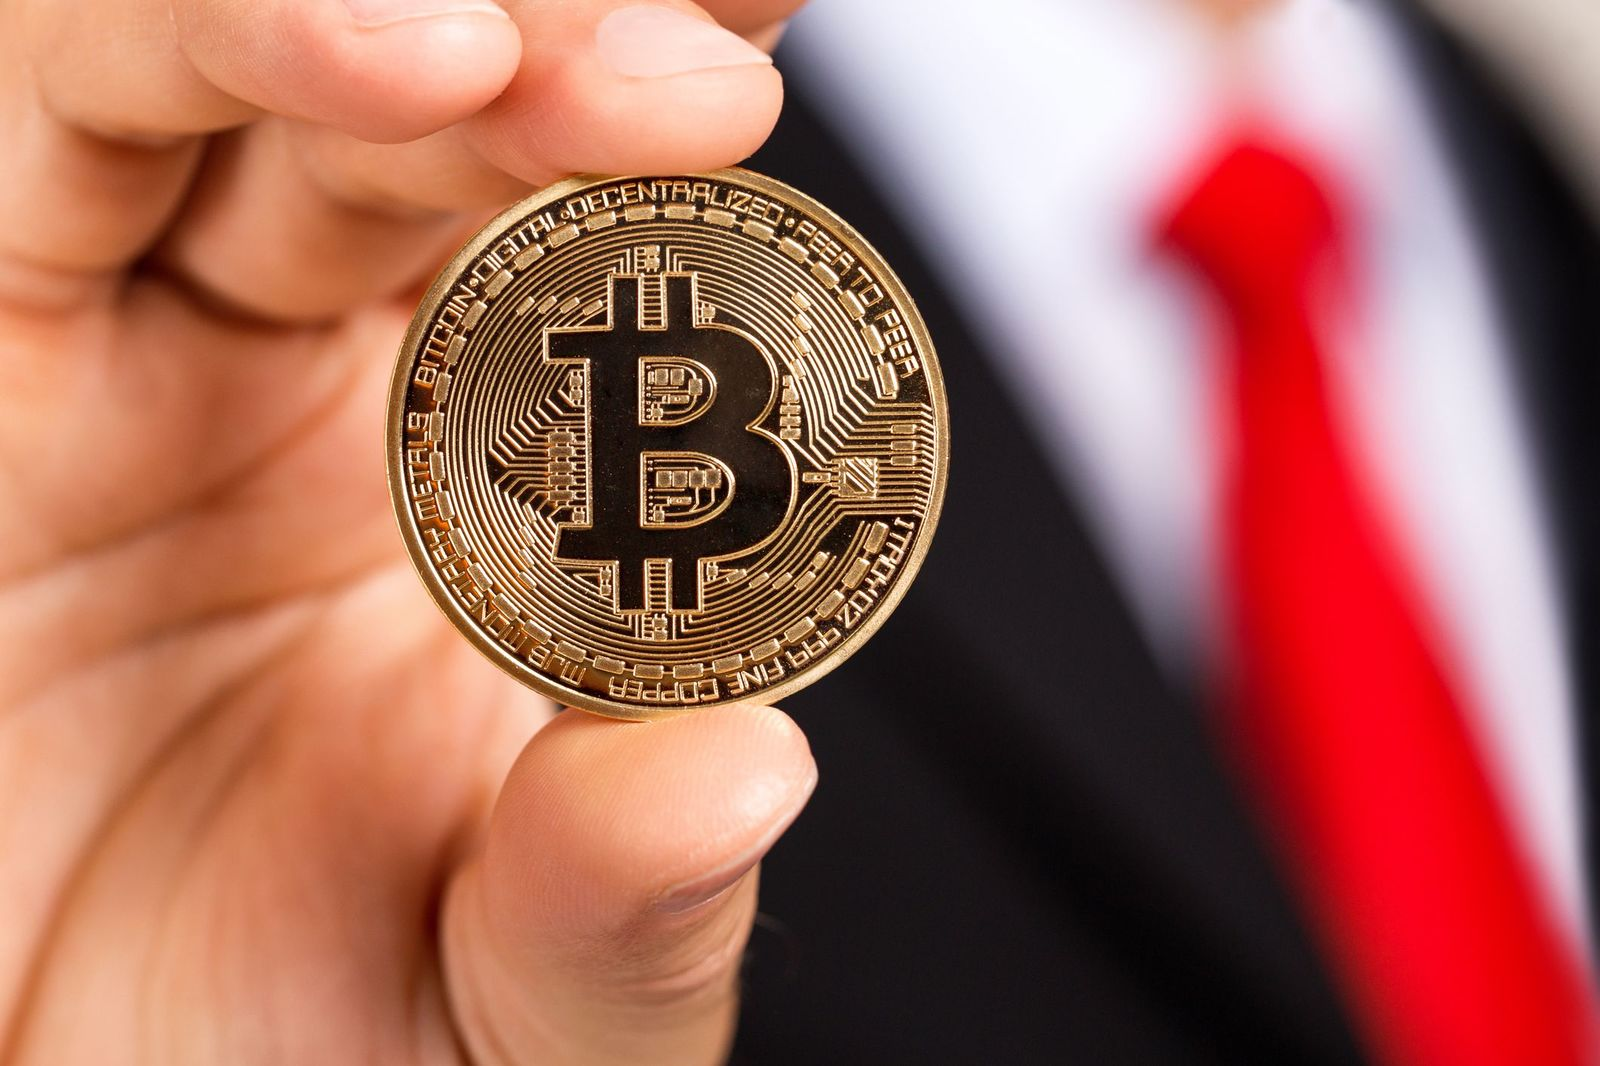 Bitcoin Name and Logo Registered With Spanish Patent and Trademark Office